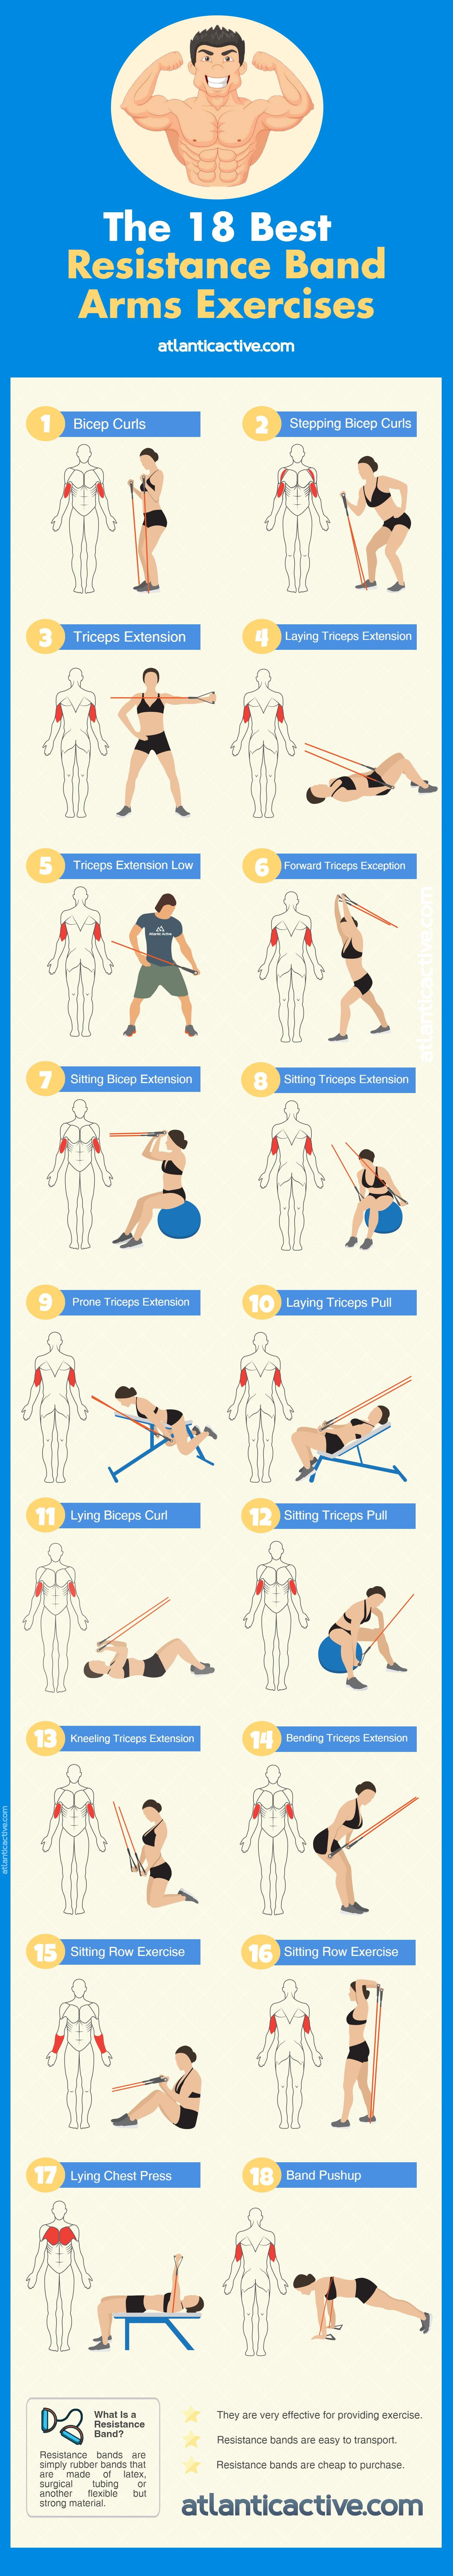 hight resolution of the resistance band arm workout https atlanticactive com resistance bands